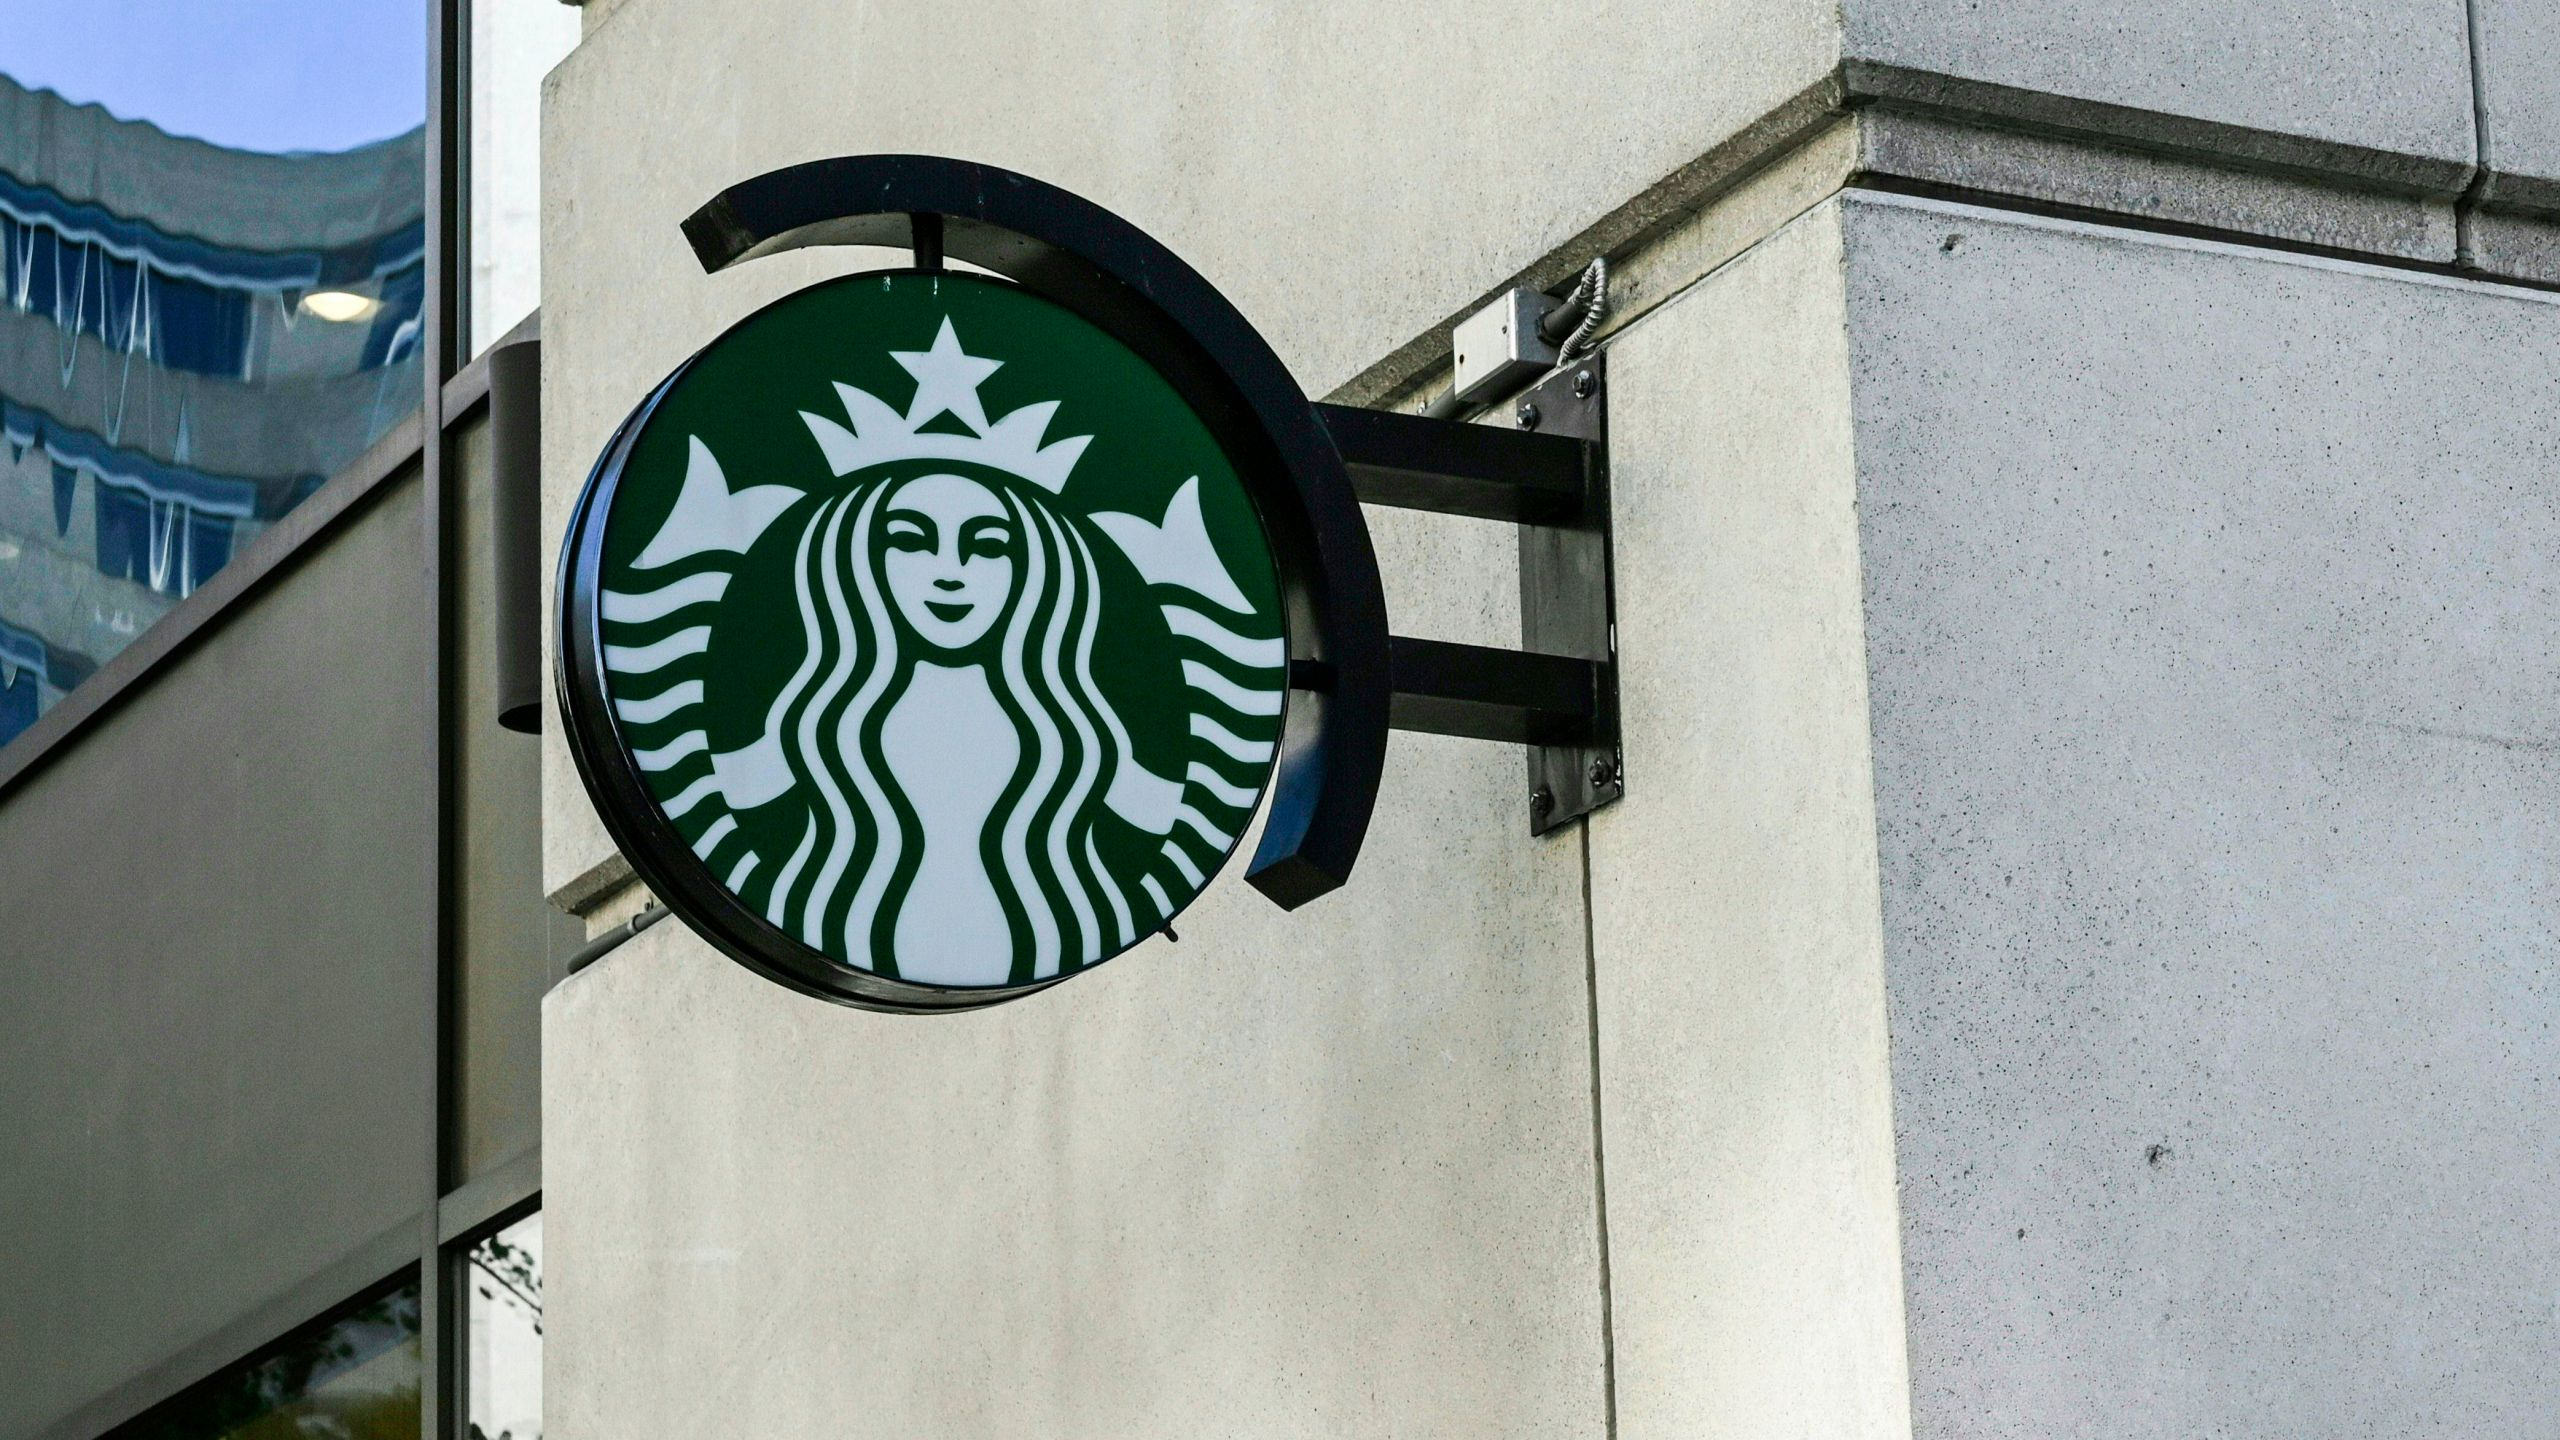 A Starbucks logo hangs over a store entrance in Washington, DC on June 11, 2019. (Credit: Eva Hambach/AFP/Getty Images)